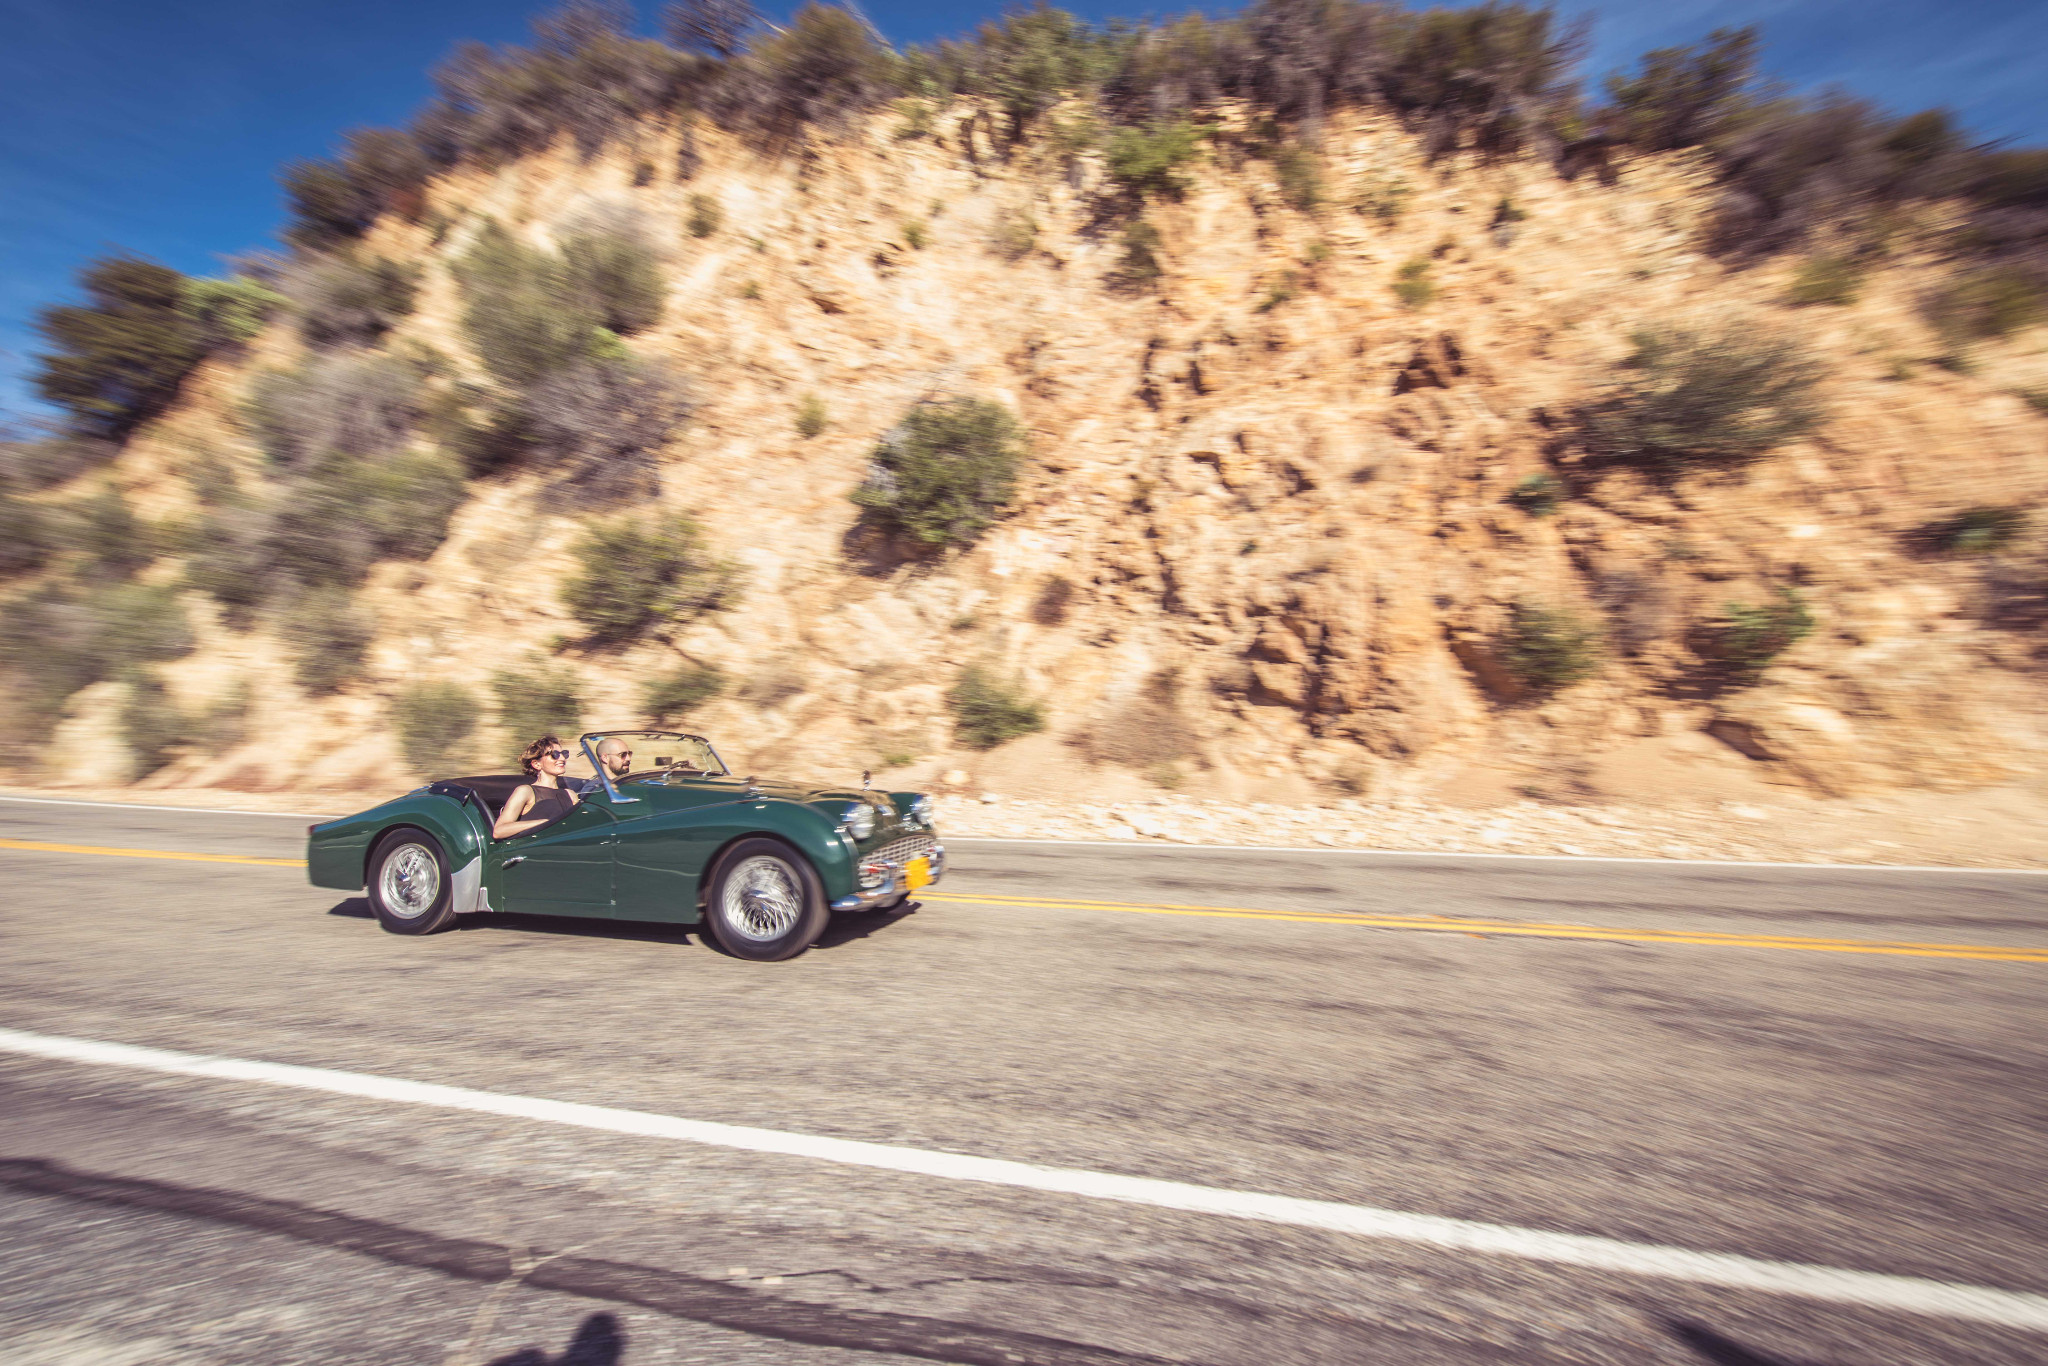 The website matches vintage and collectible car owners with prospective renters.